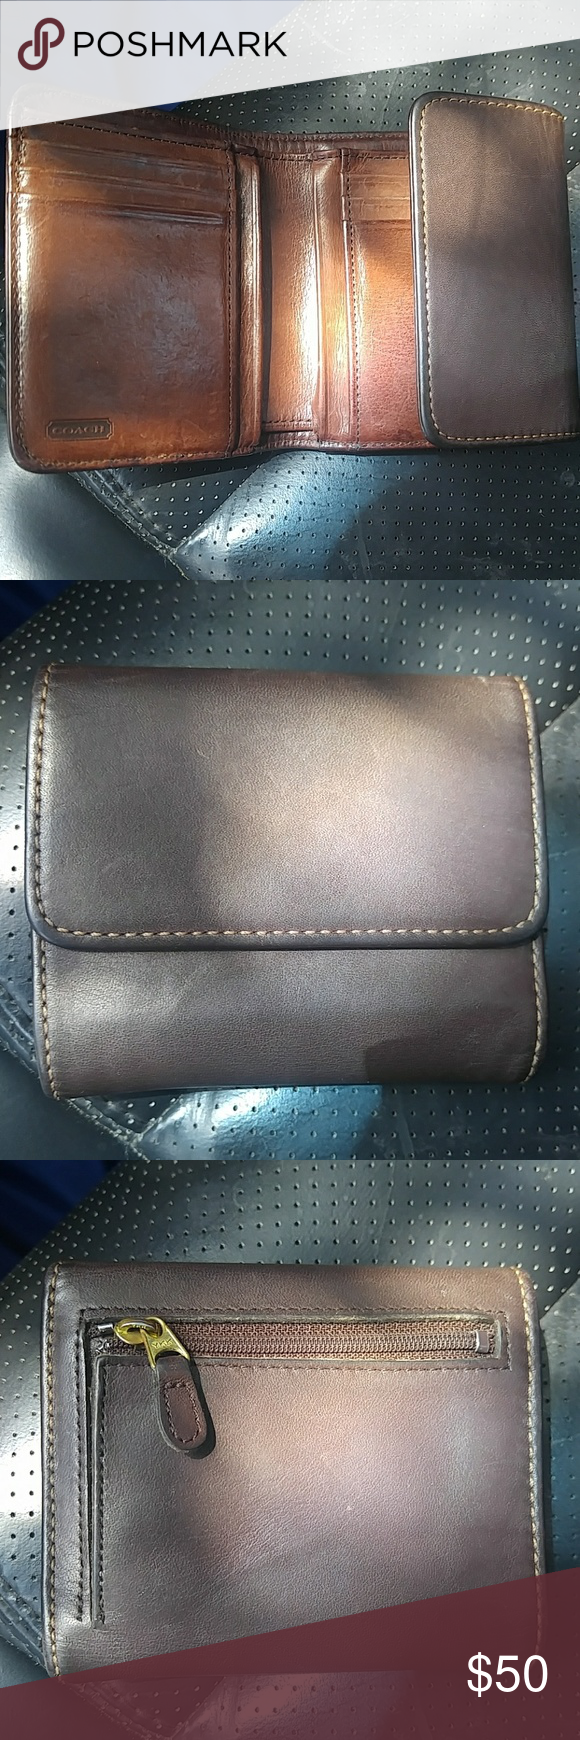 Vintage Coach Leather Compact Wallet Preloved but still has so much life  left. In good used vintage condition. Minor stitching undone at inner bill  slot ... c7df63f182e0d